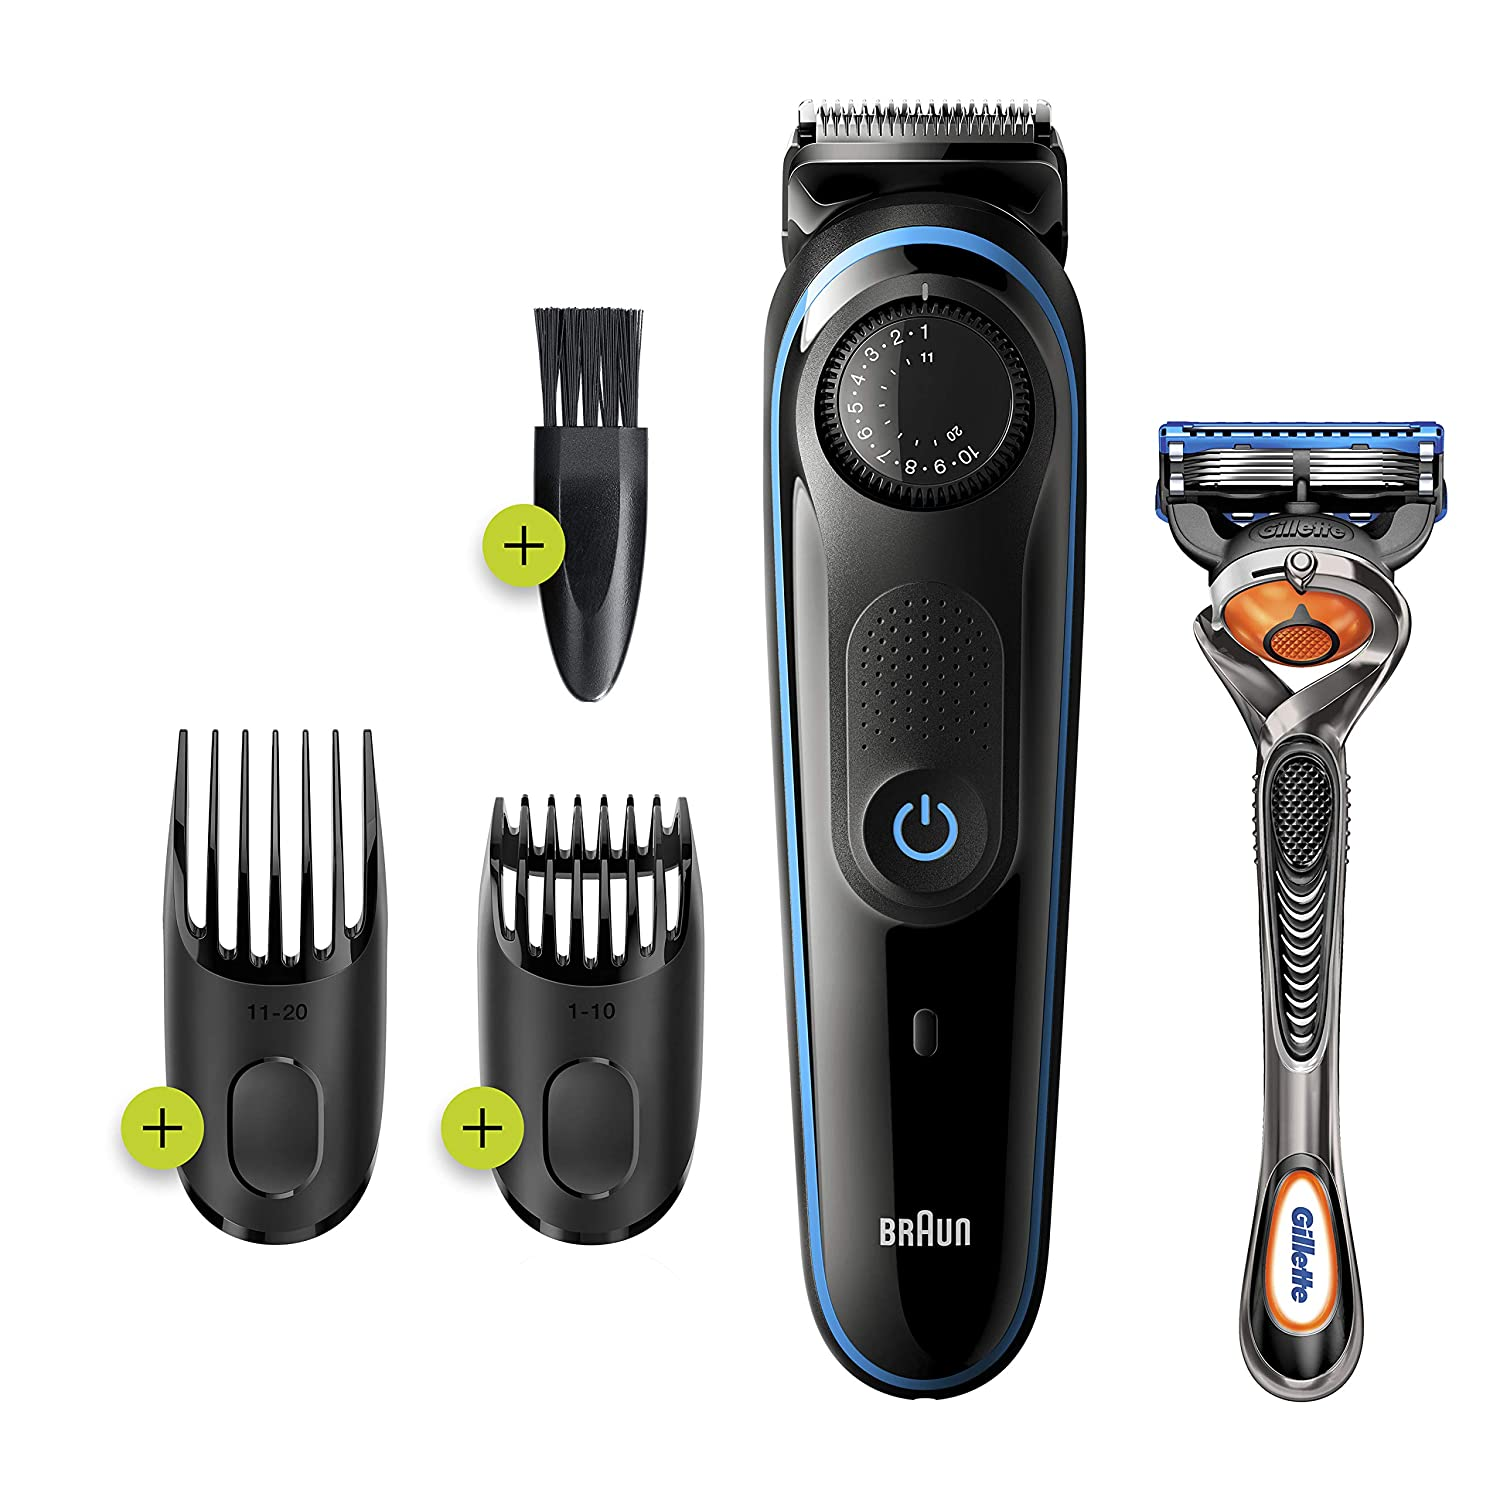 Braun Beard Trimmer Bt3240, Beard Trimmer for Men & Hair Clipper, 39 Length Settings, Black/Blue